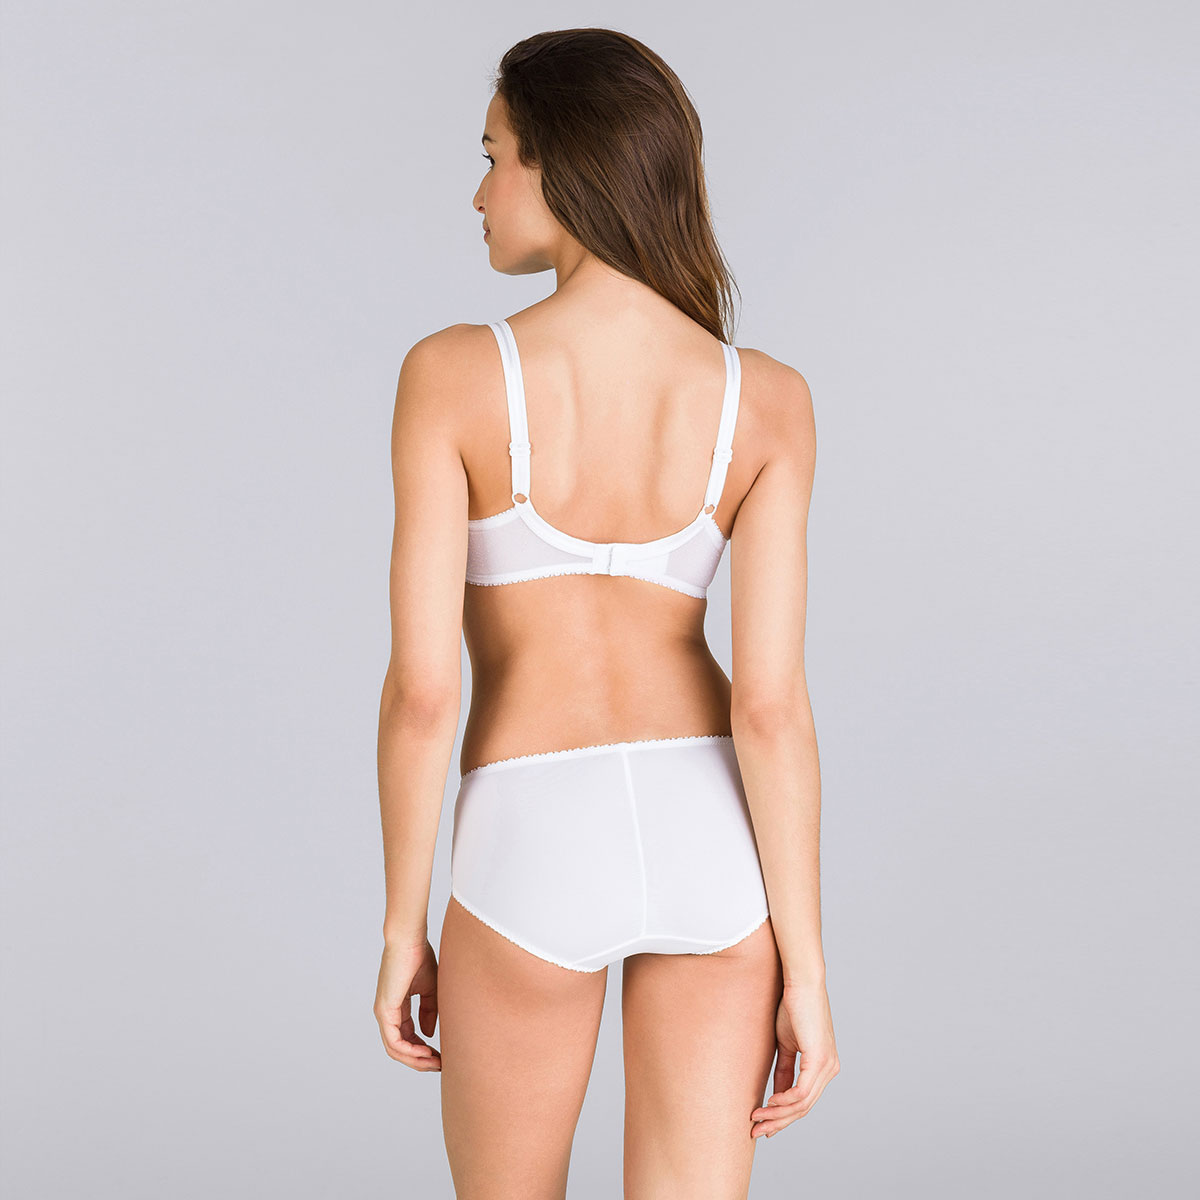 Midi Brief in White – Classic Lace Support-PLAYTEX